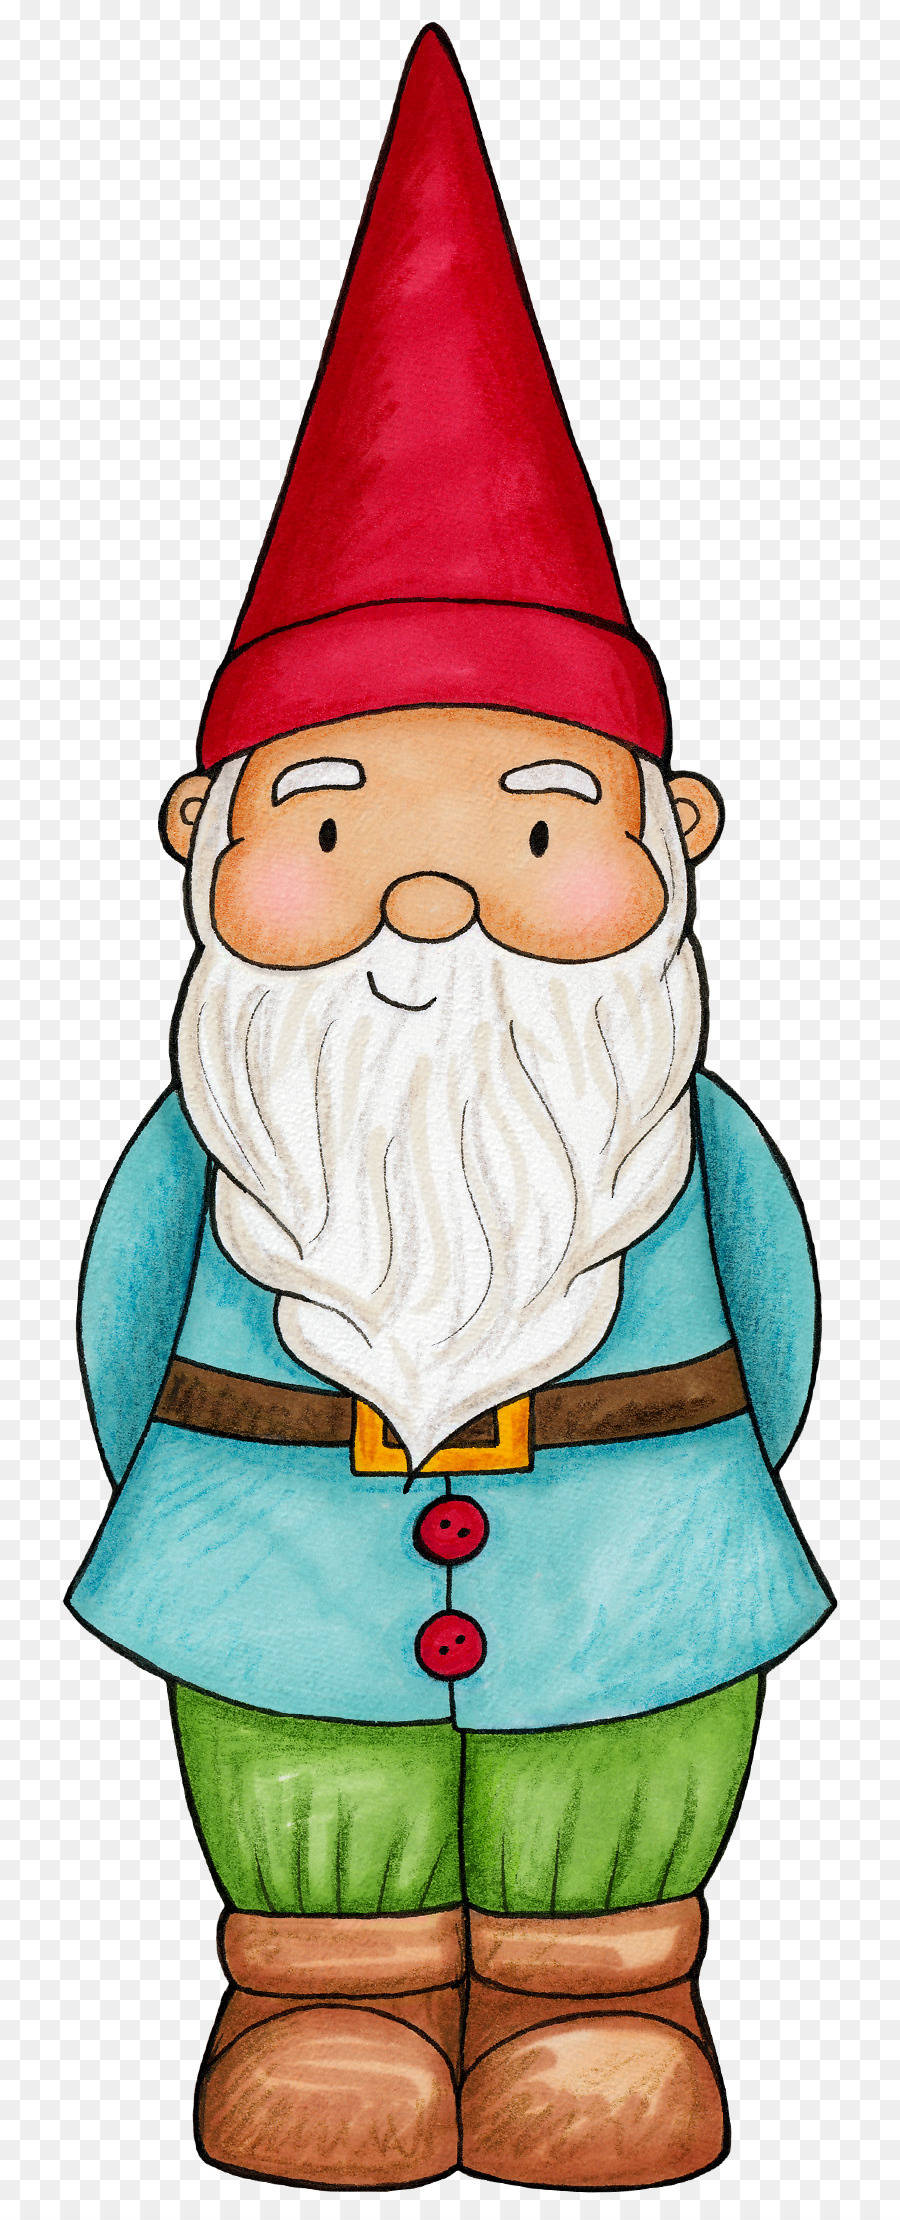 png download Gnome clipart simple garden. Sketch at paintingvalley com